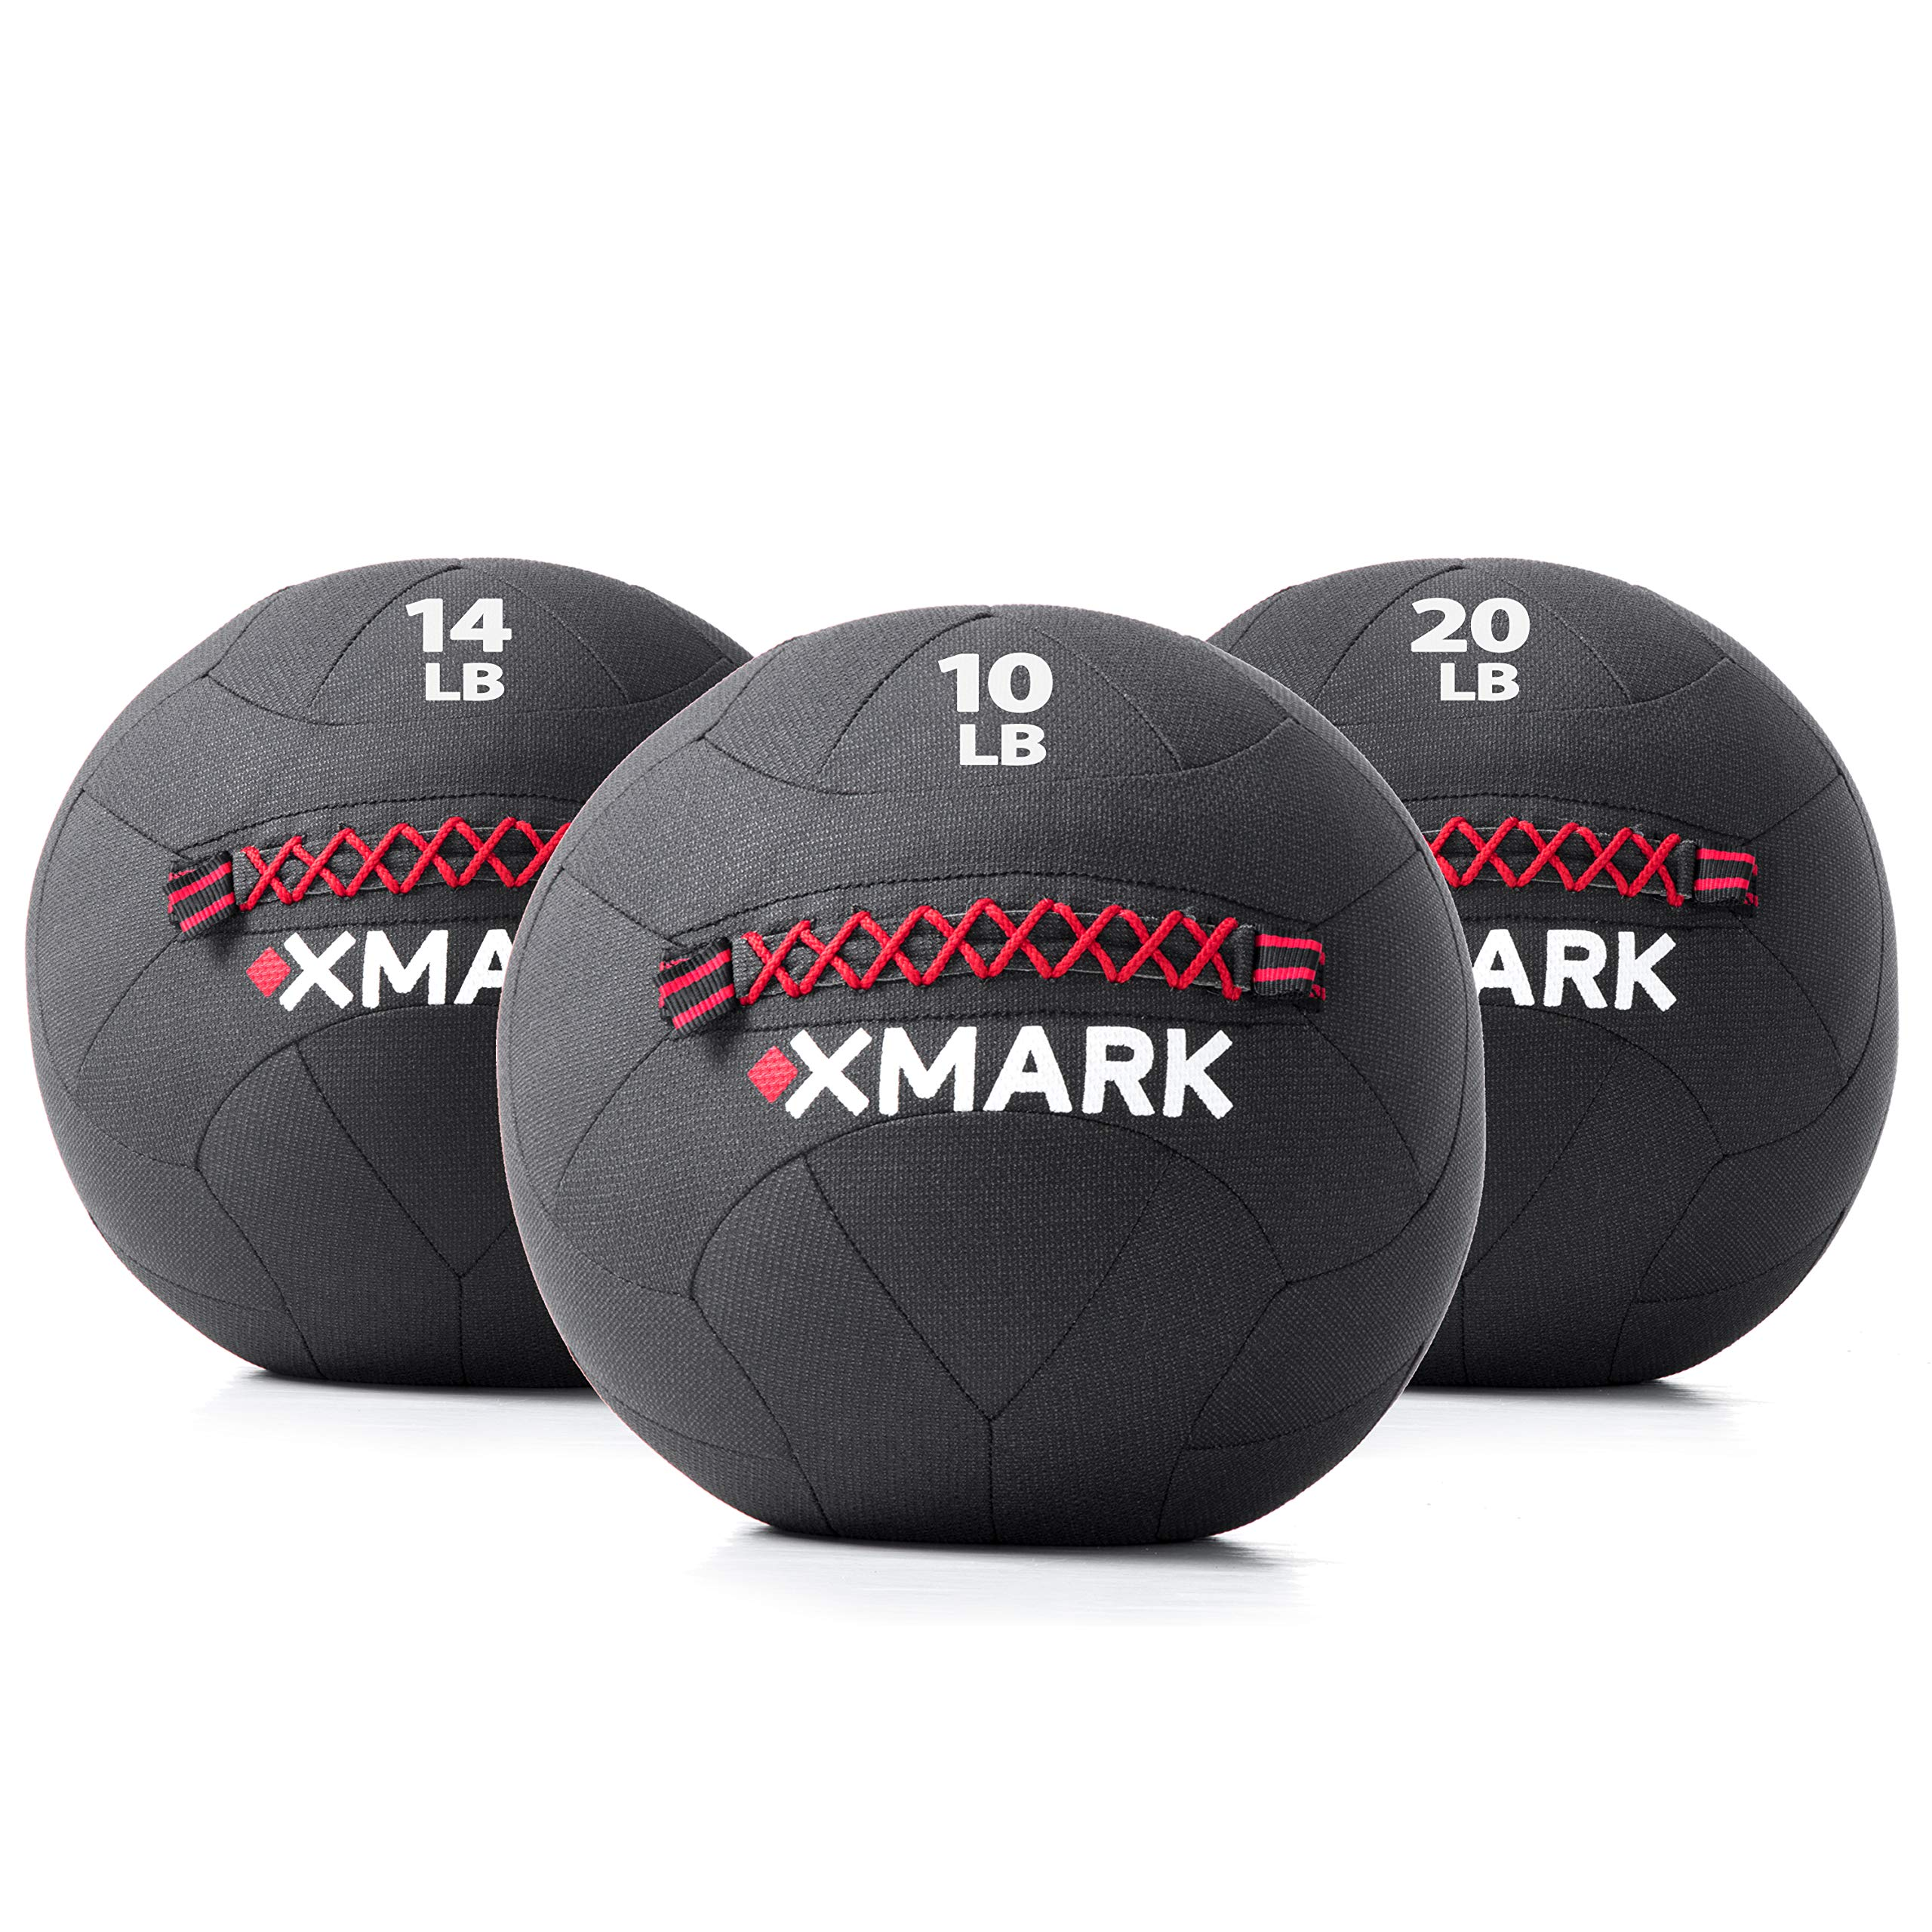 XMark Kevlar Wall Ball/Medicine Ball, Ideal for Strength Training and Conditioning, Triple Stitched for Reinforcement, 10 lb, 14 lb, and 20 lb. Set of Exercise Balls